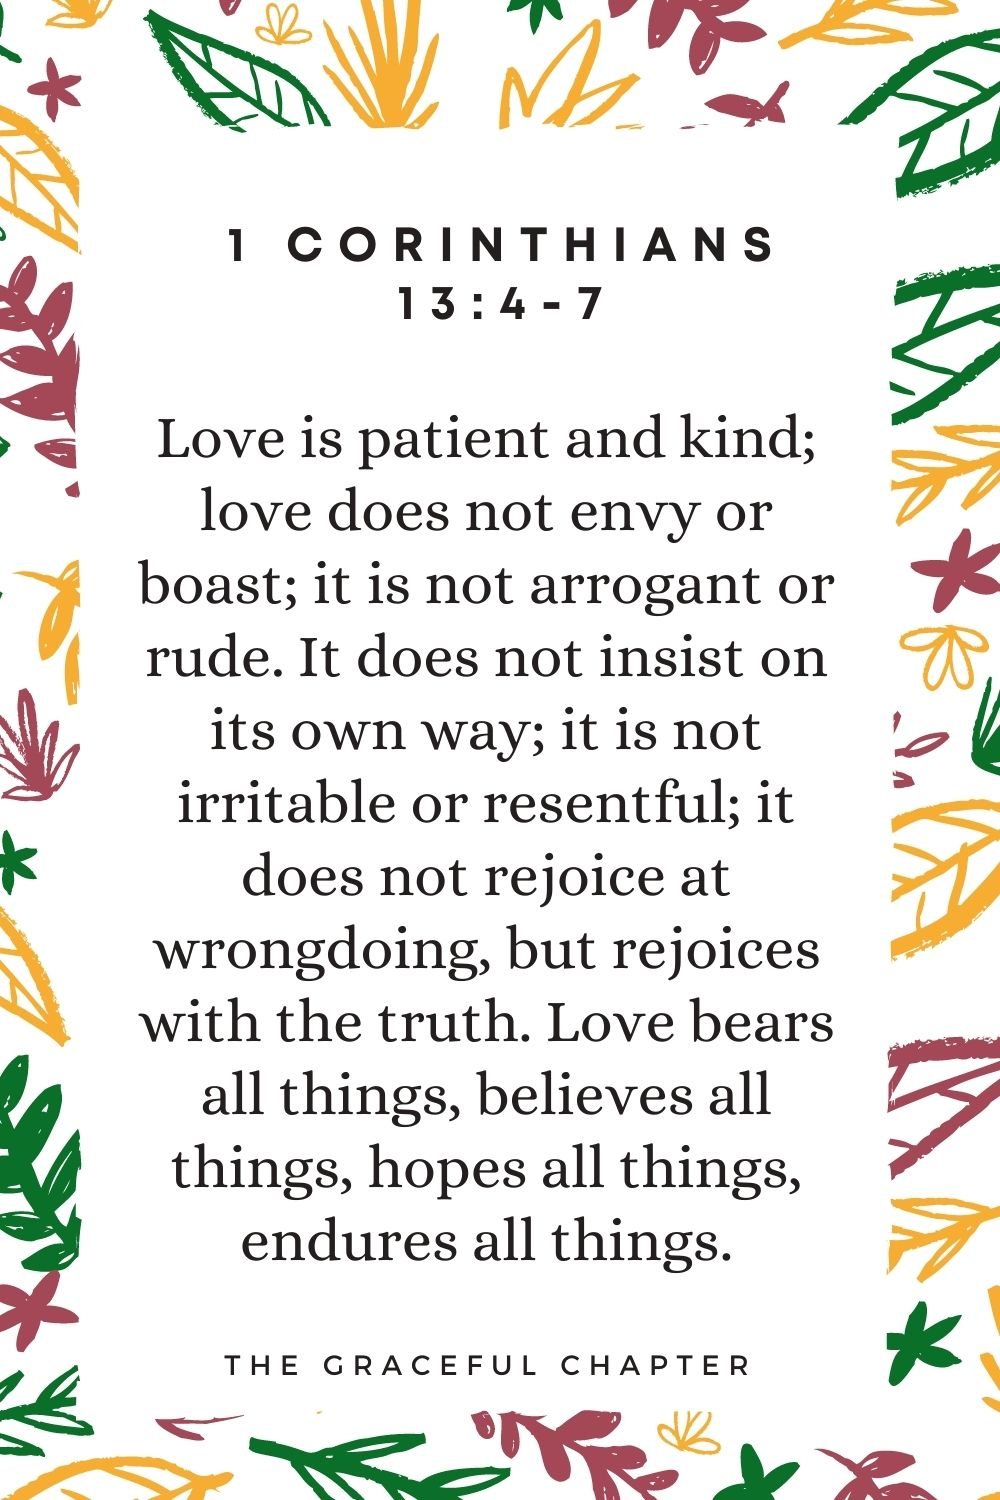 What is love, according to the Bible?